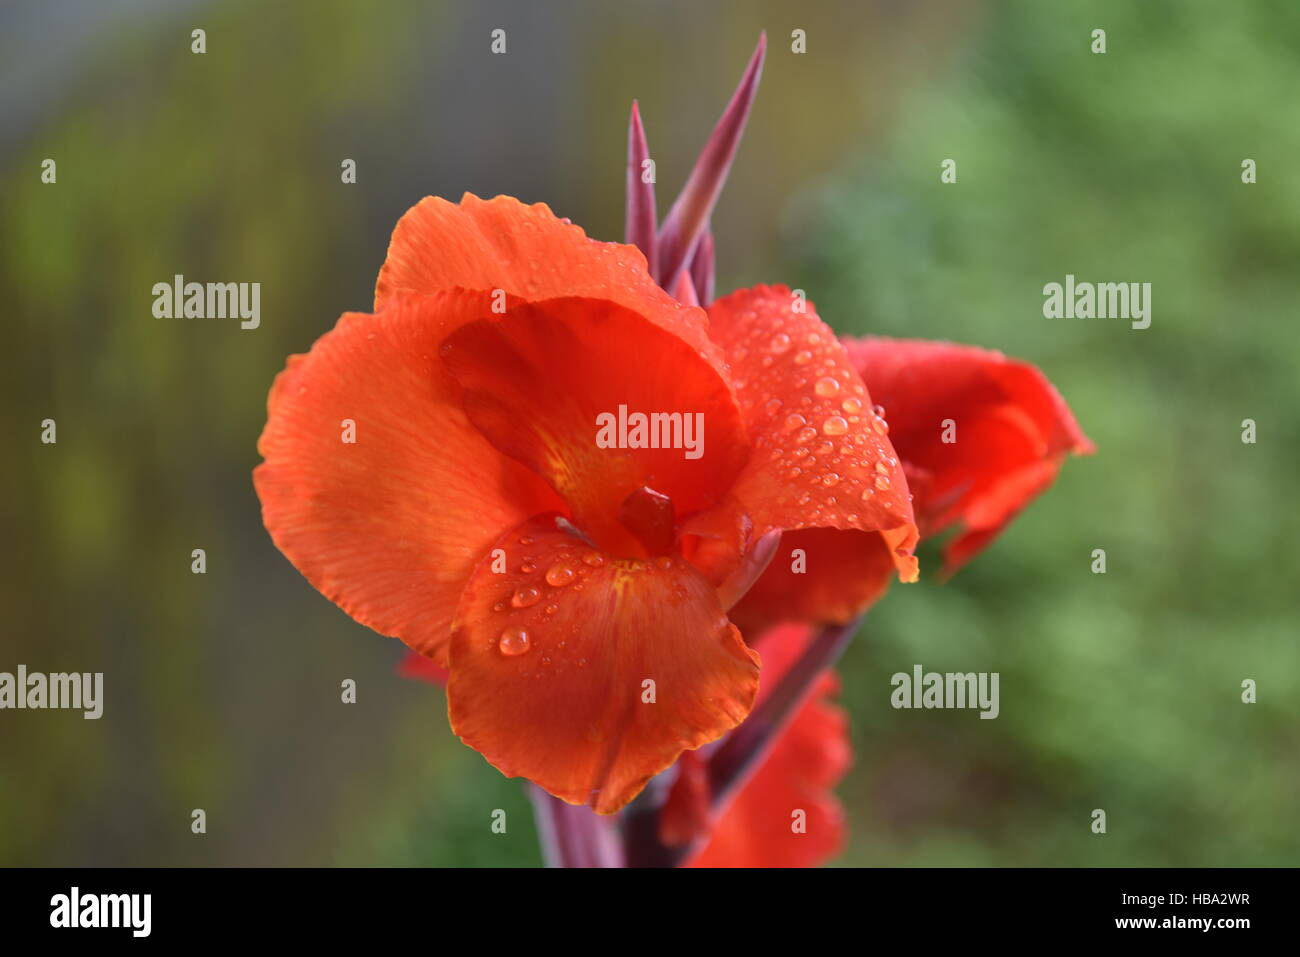 Canna lily, although not a true lily. Indian flower plant footage taken in rainy days - Stock Image